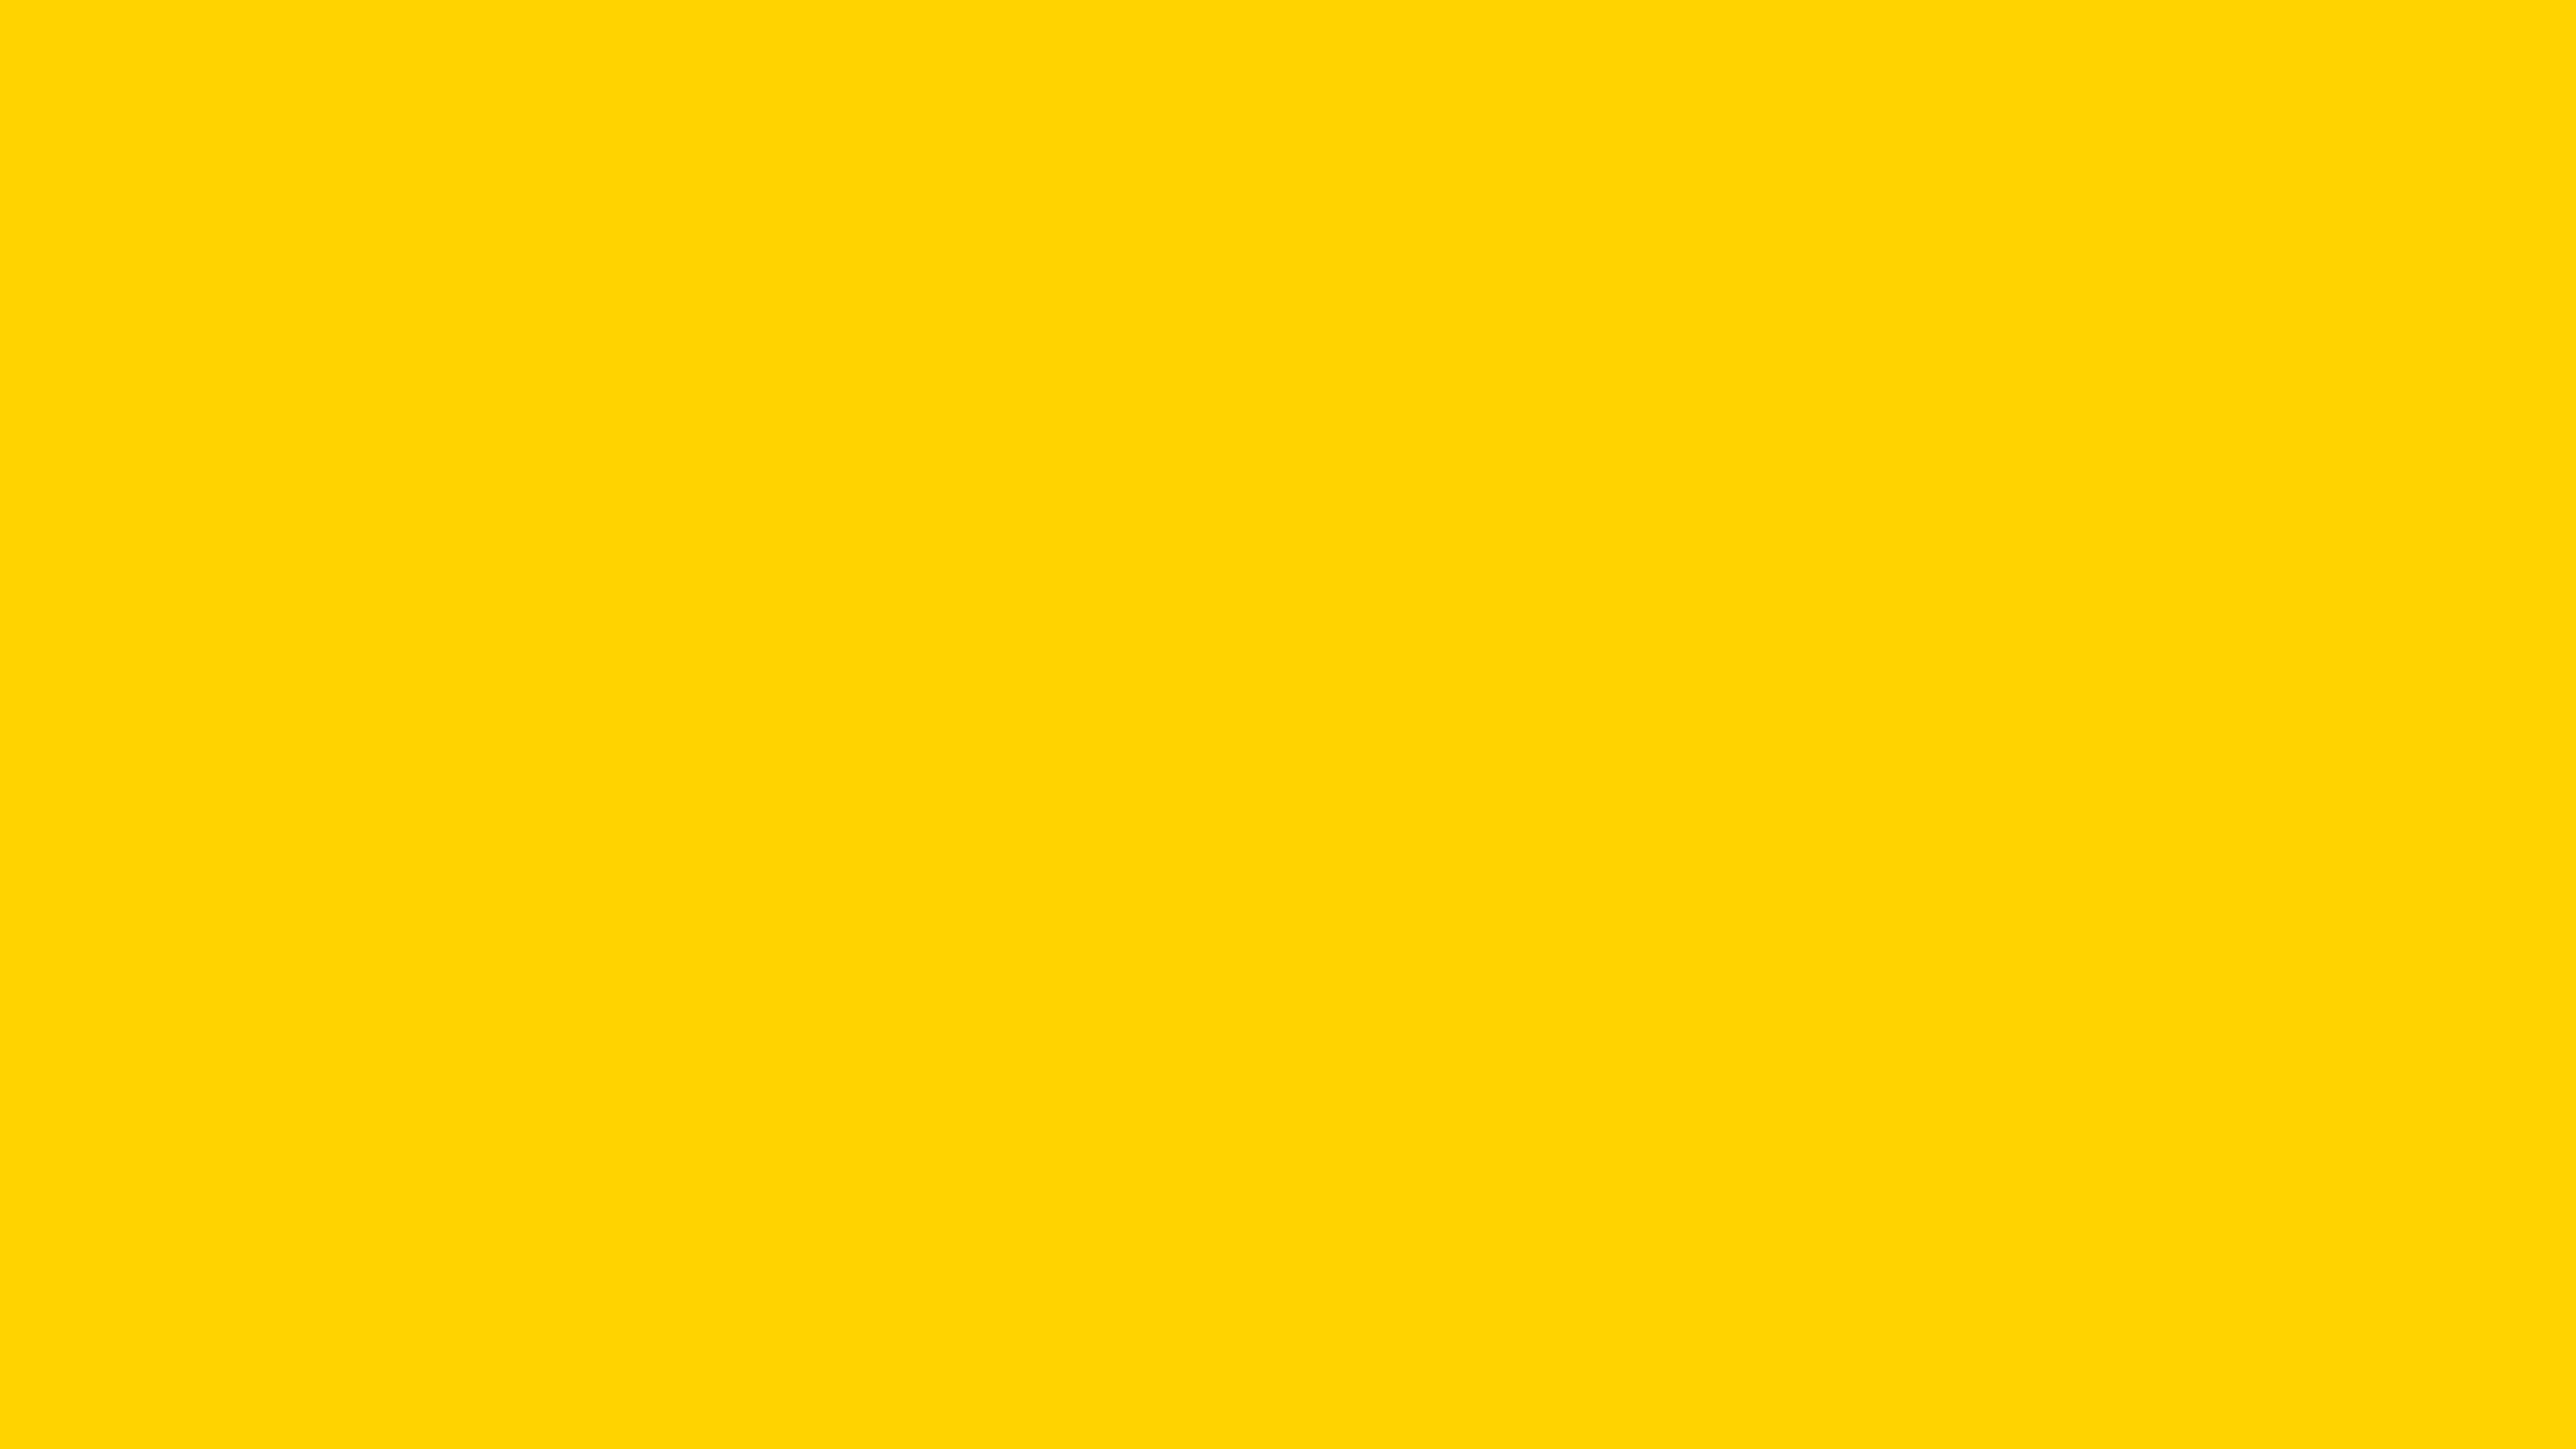 7680x4320 Yellow NCS Solid Color Background